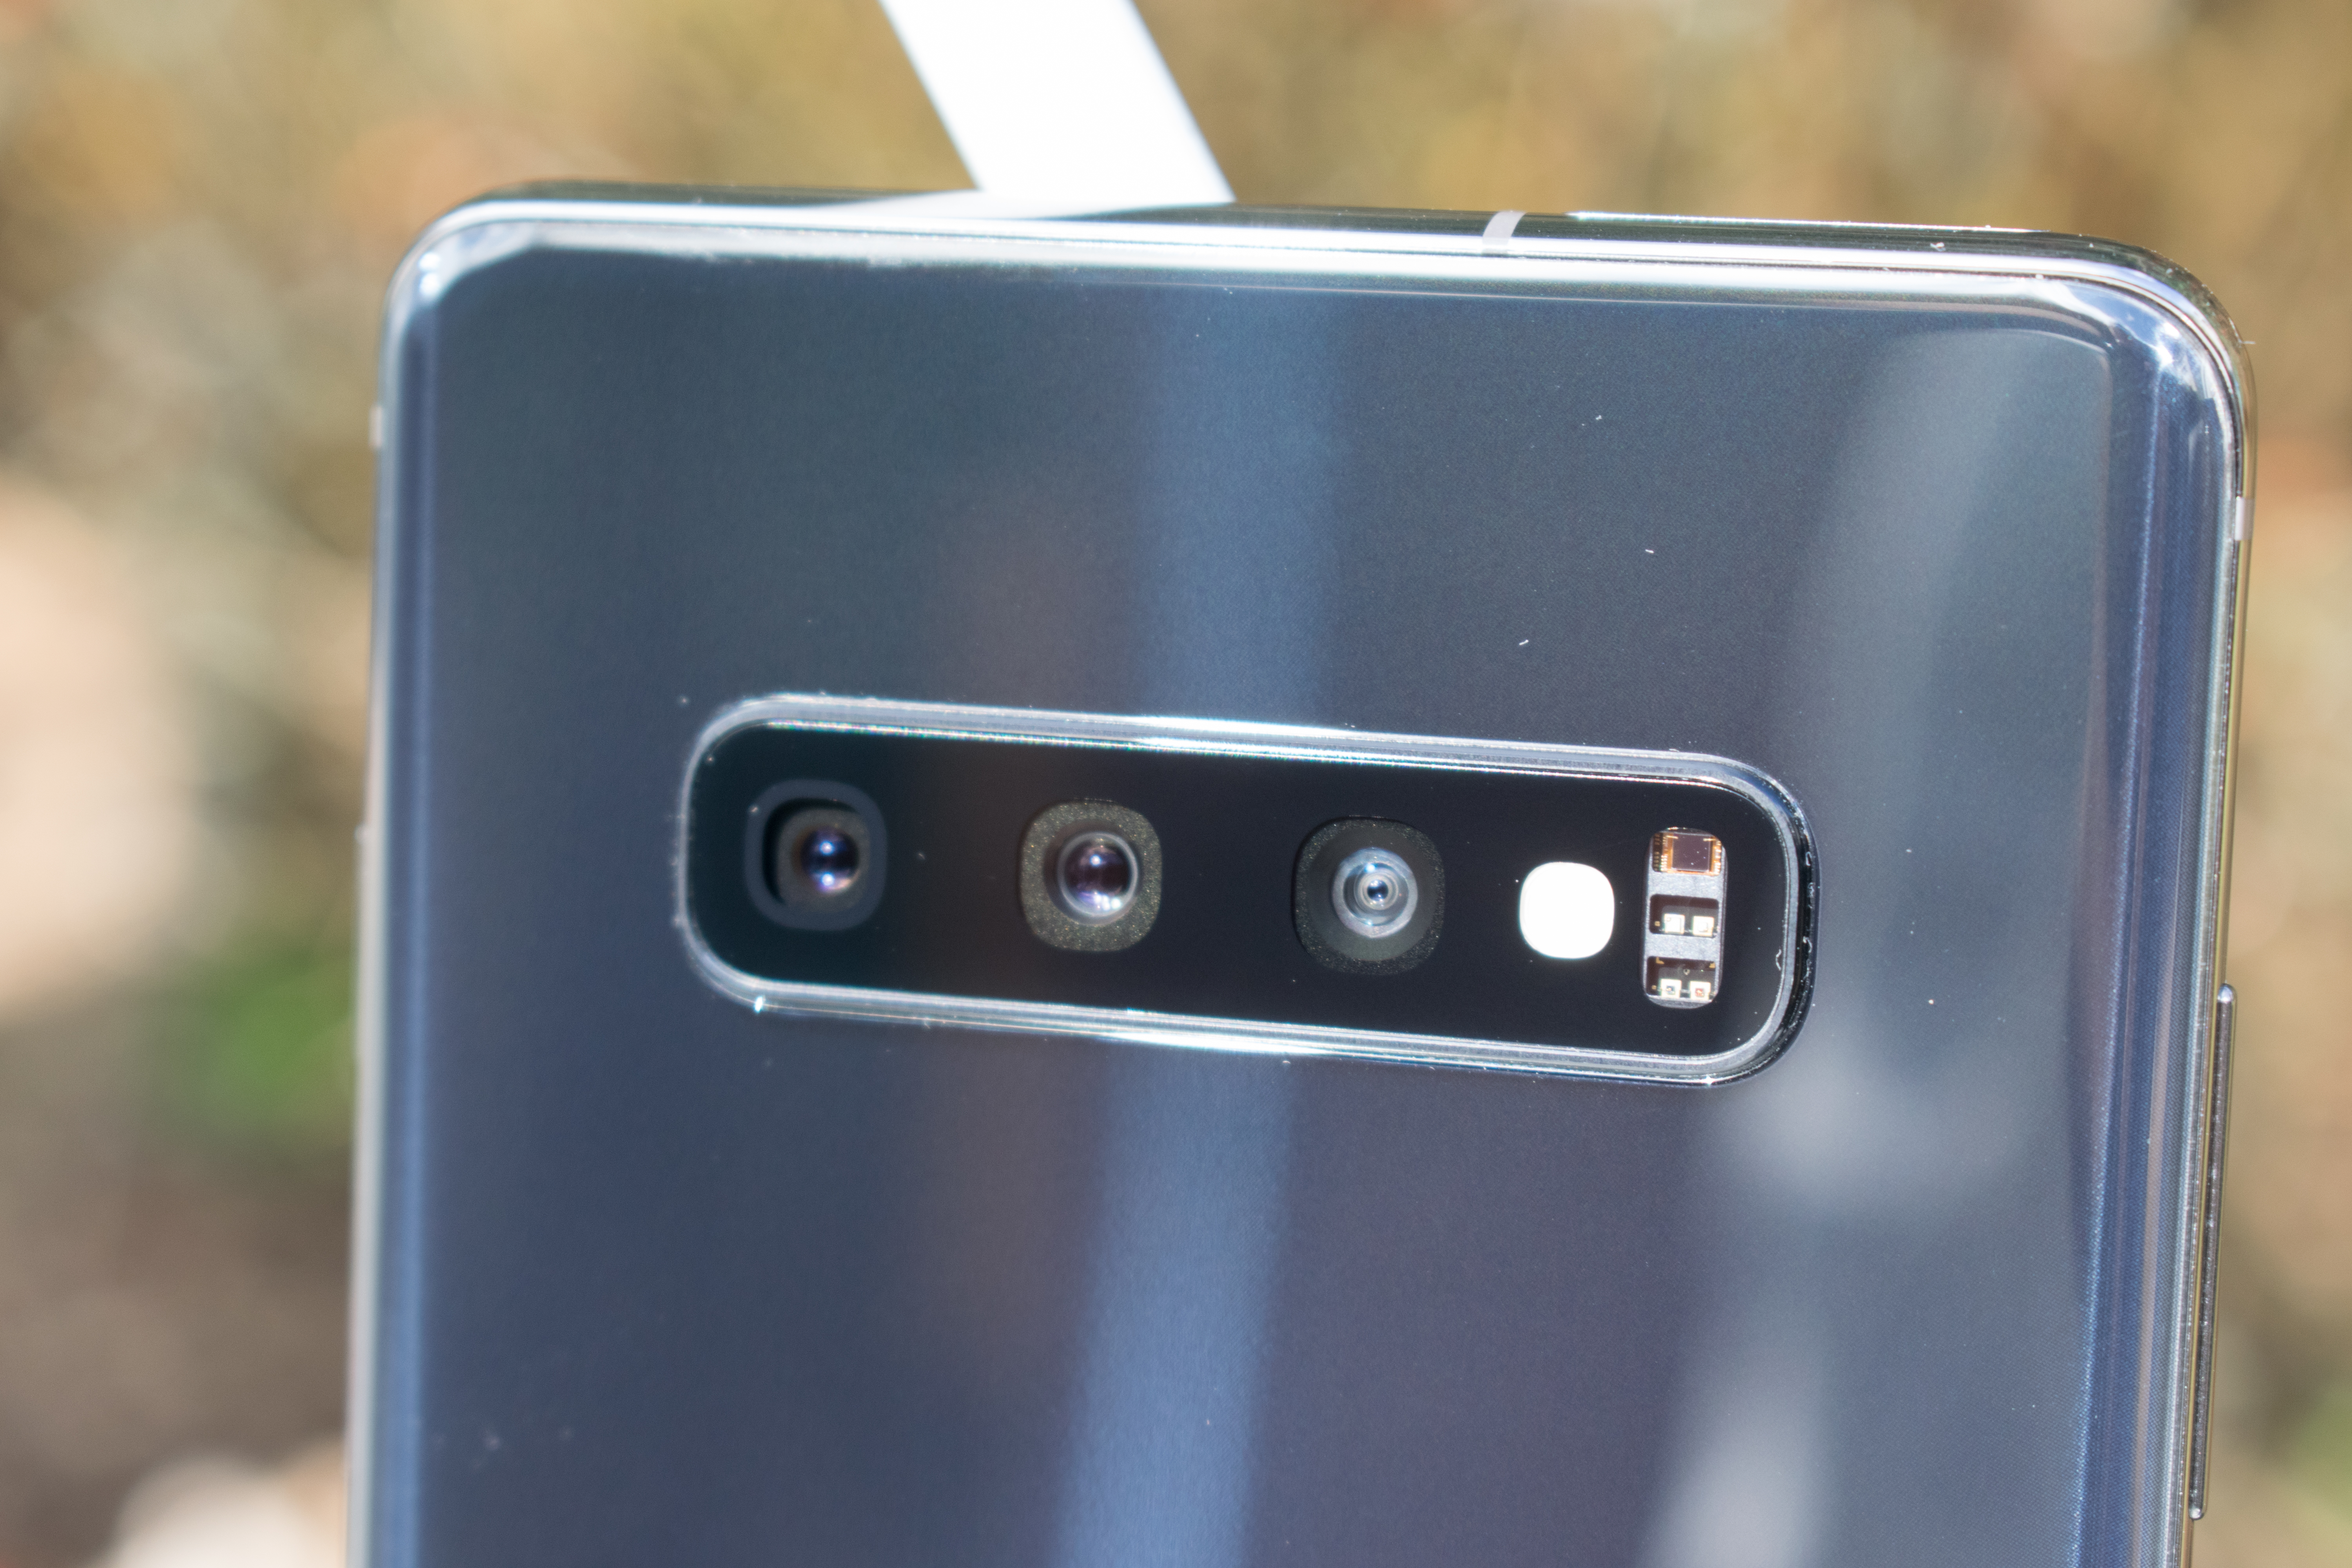 The Samsung Galaxy S10+ Snapdragon & Exynos Review: Almost Perfect